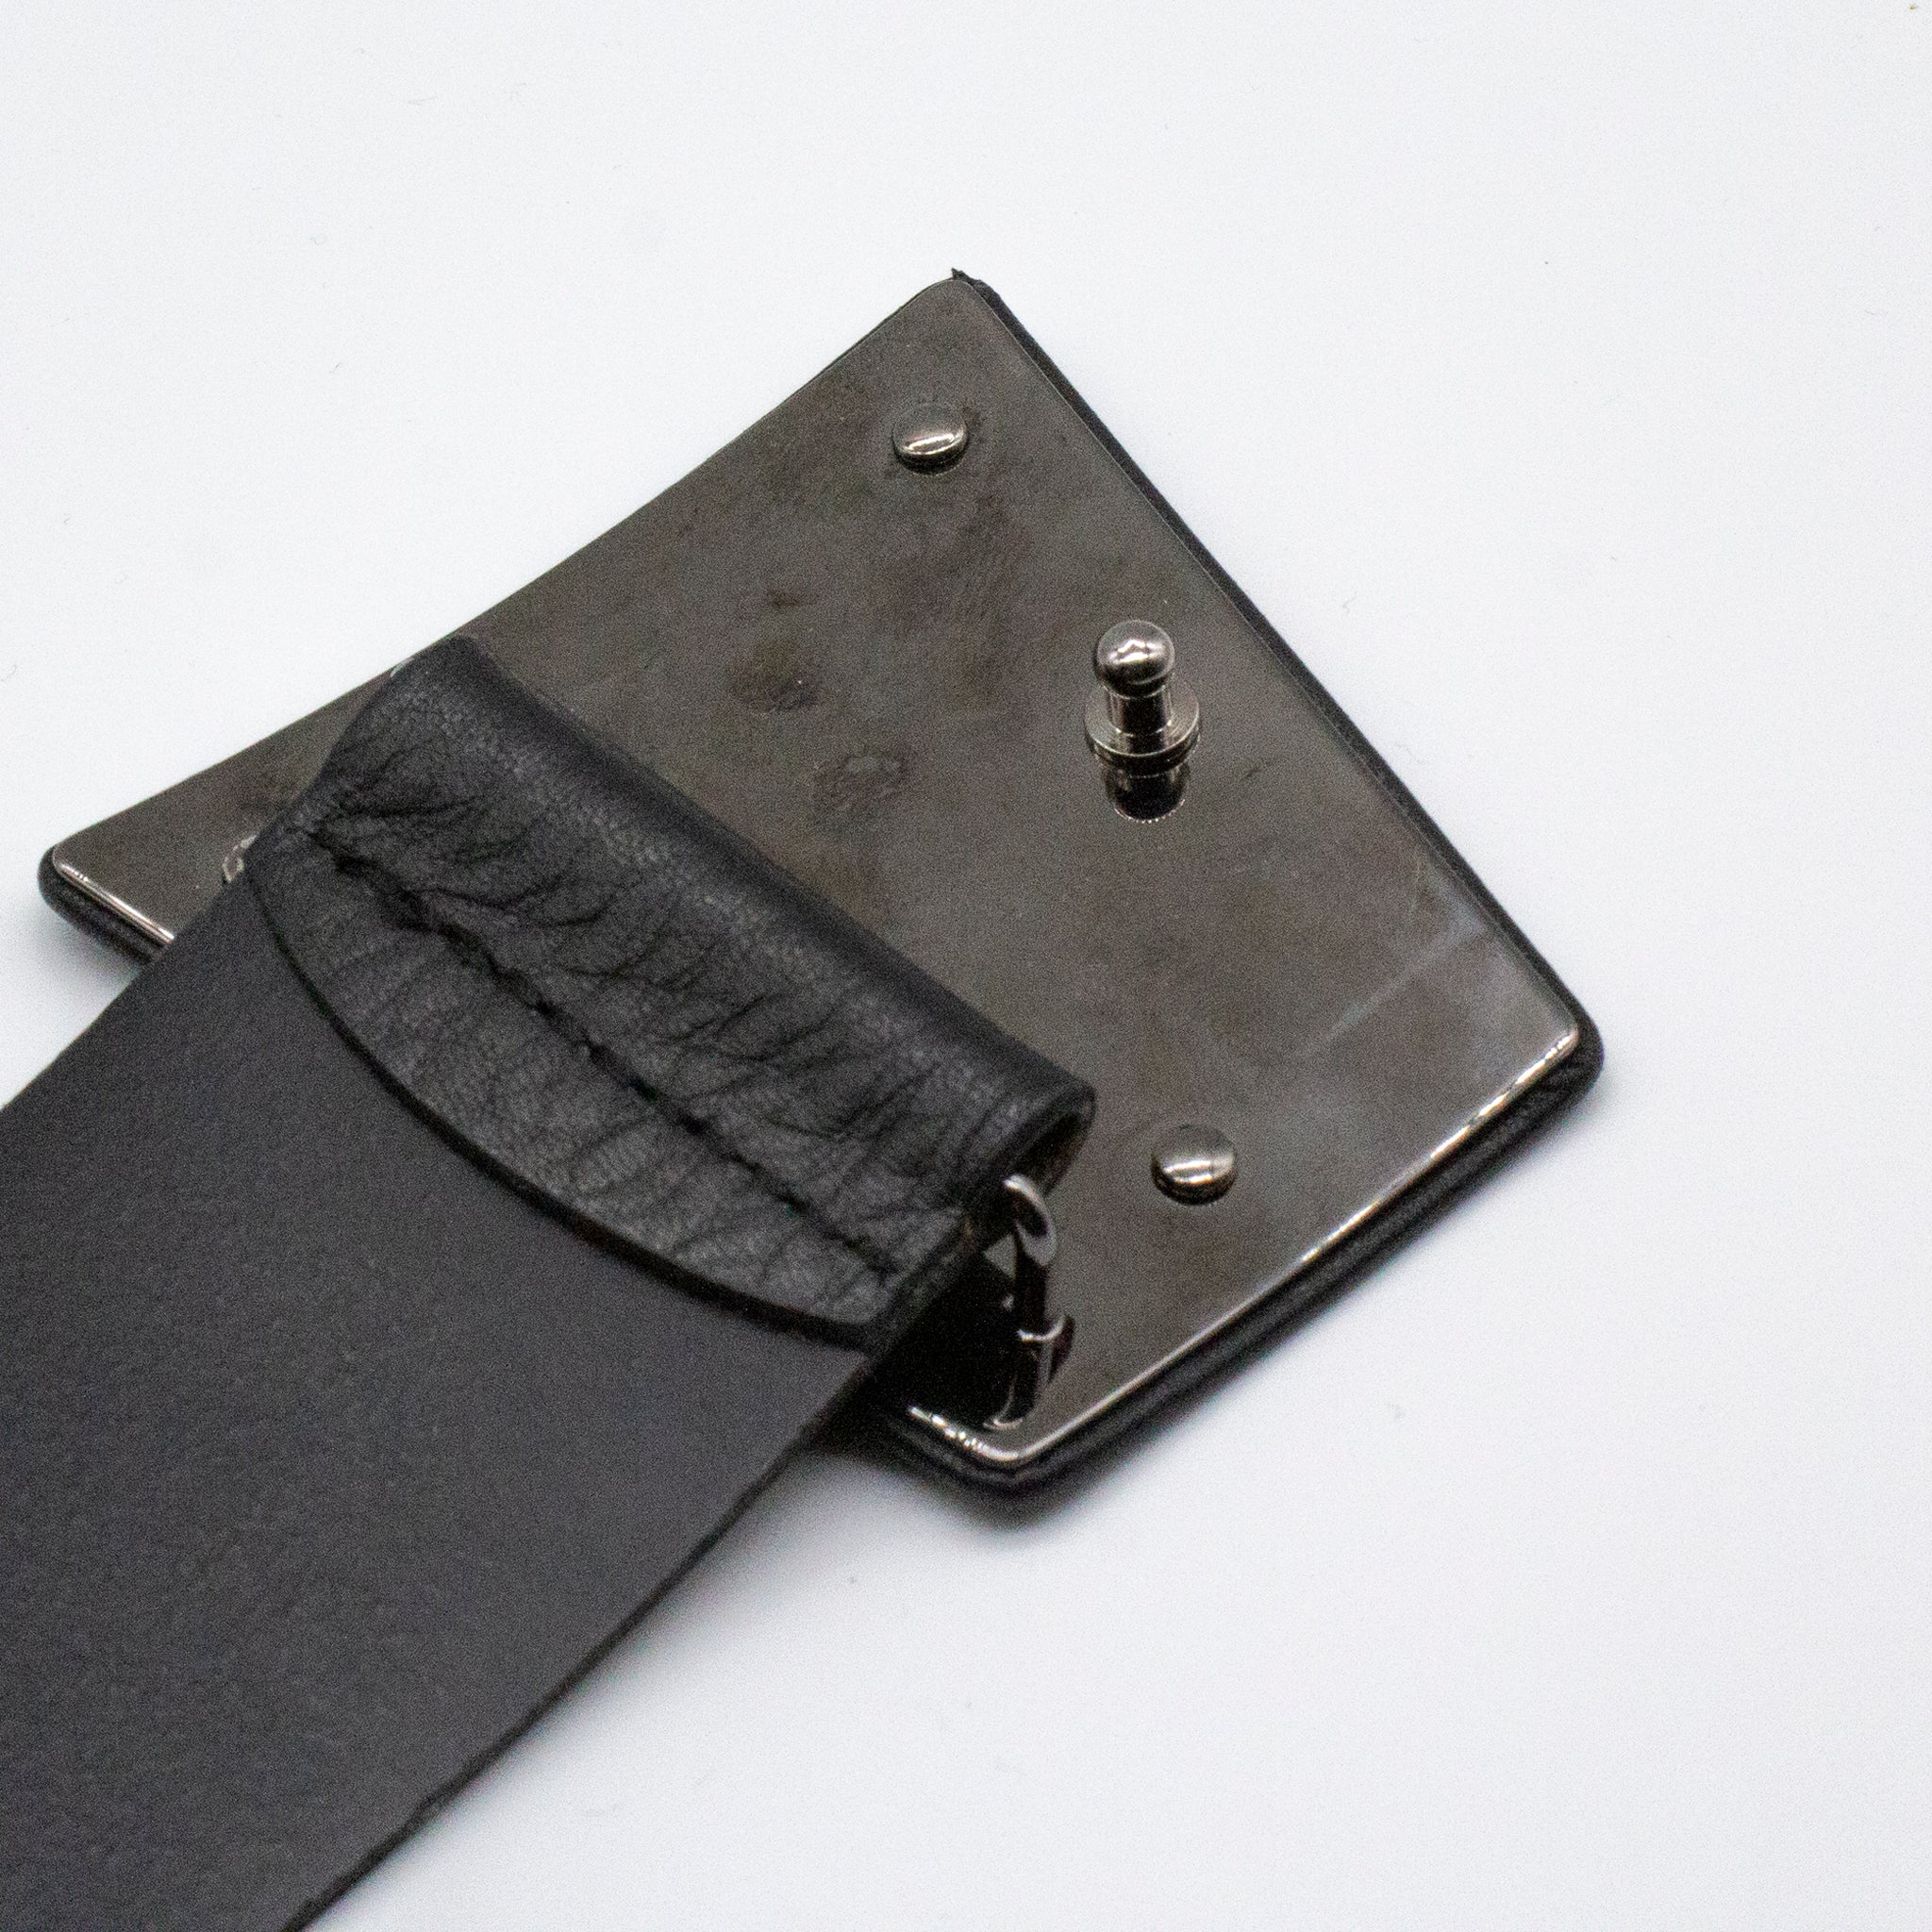 AKRIS Black Grained Leather Trapezoid Ai Buckle Peg in Hole Wide Waist Belt 40 M